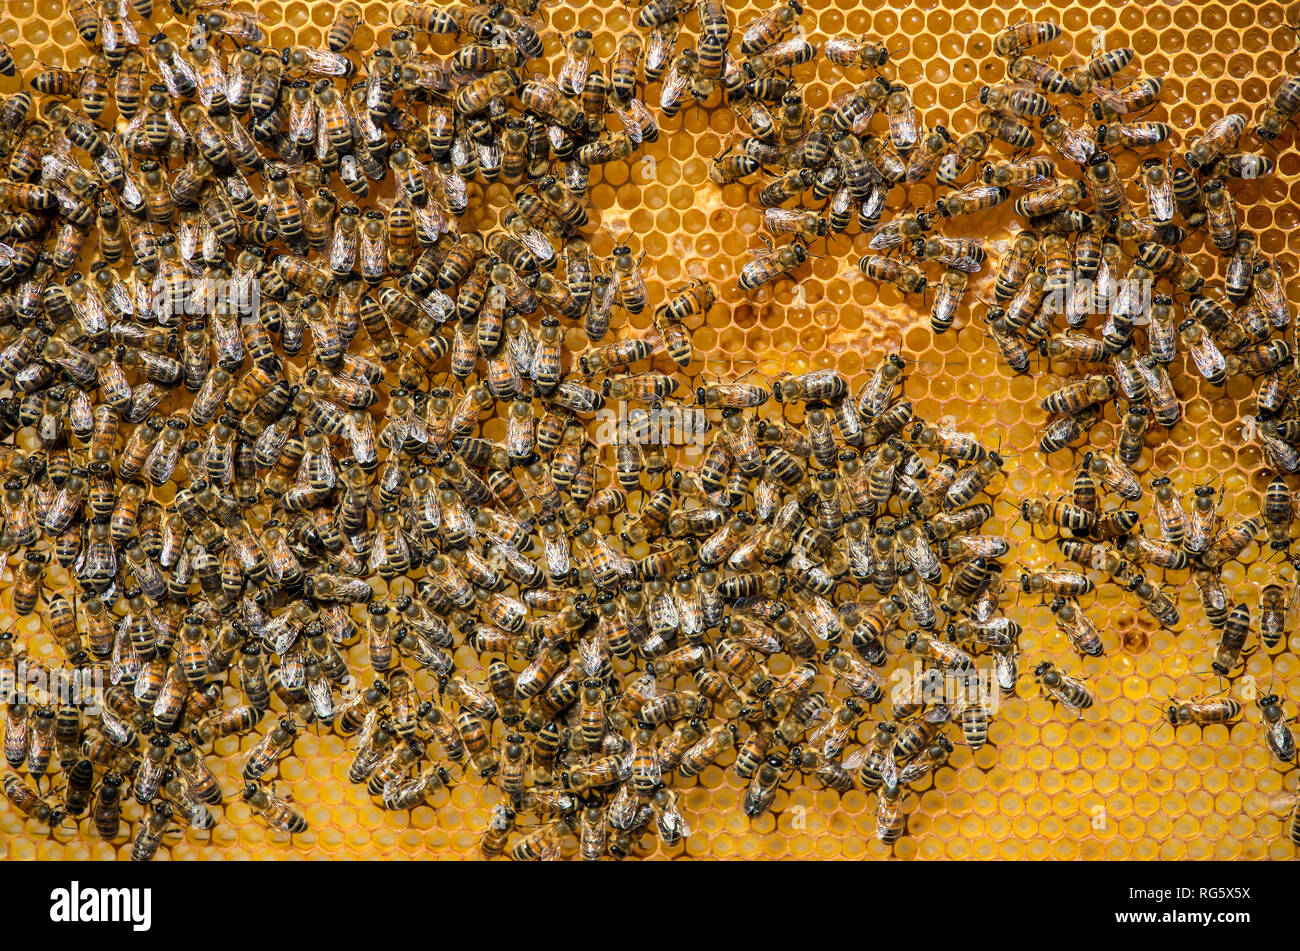 honey bees, honeycomb, beehive, Honigbienen, Honigwabe, Bienenstock Stock Photo